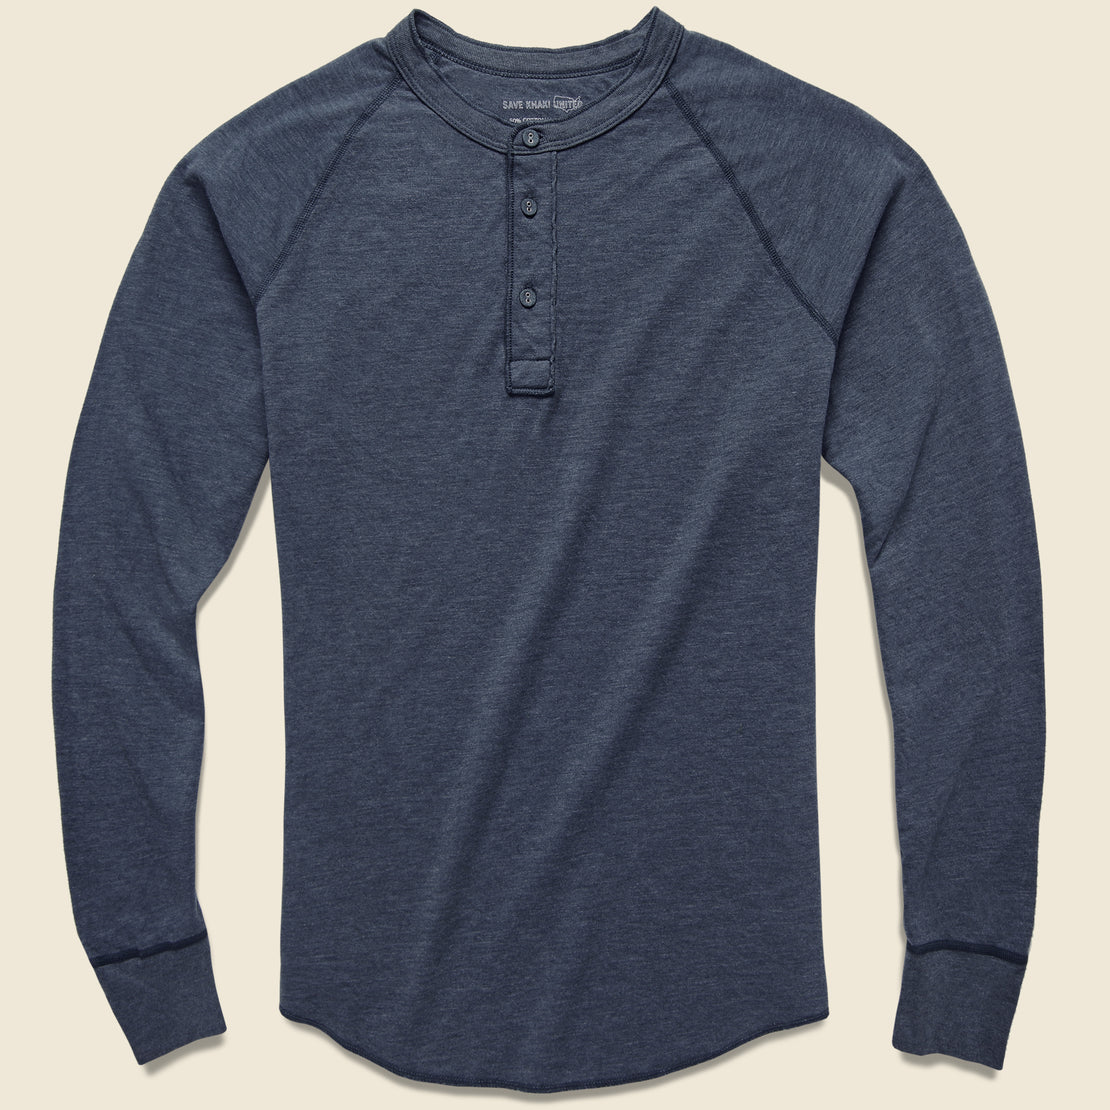 Save Khaki Pointelle Henley - Navy